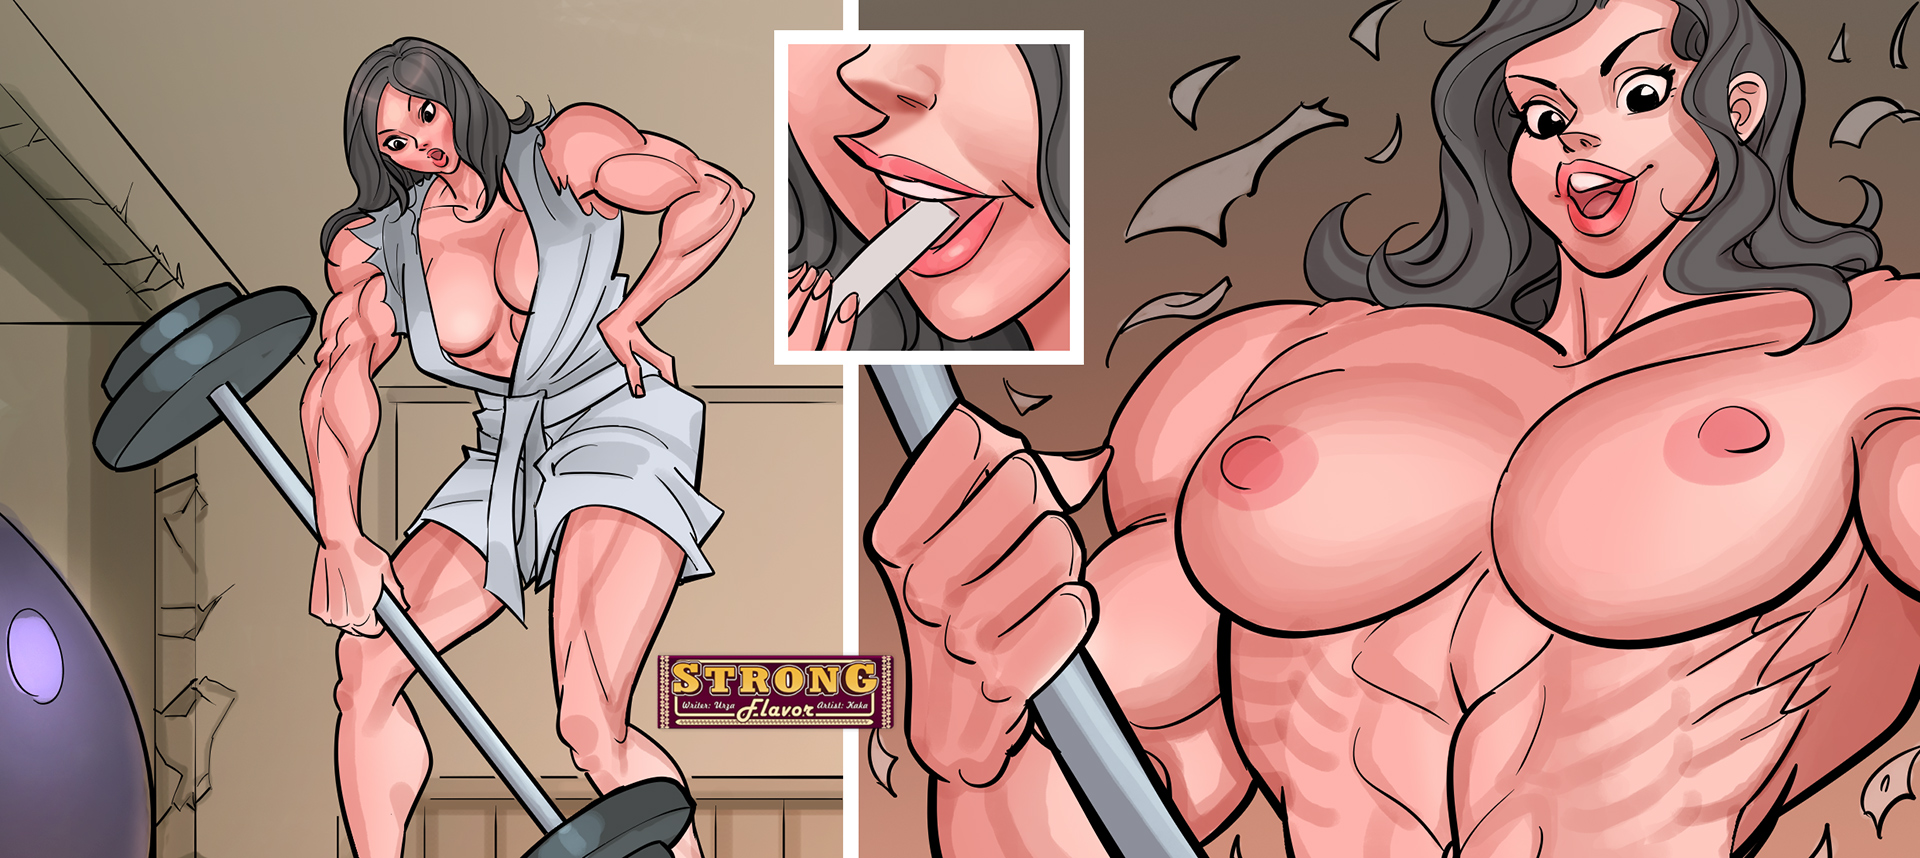 strong_flavor_04_slidea_by_muscle_fan_comics-dbw9v8k